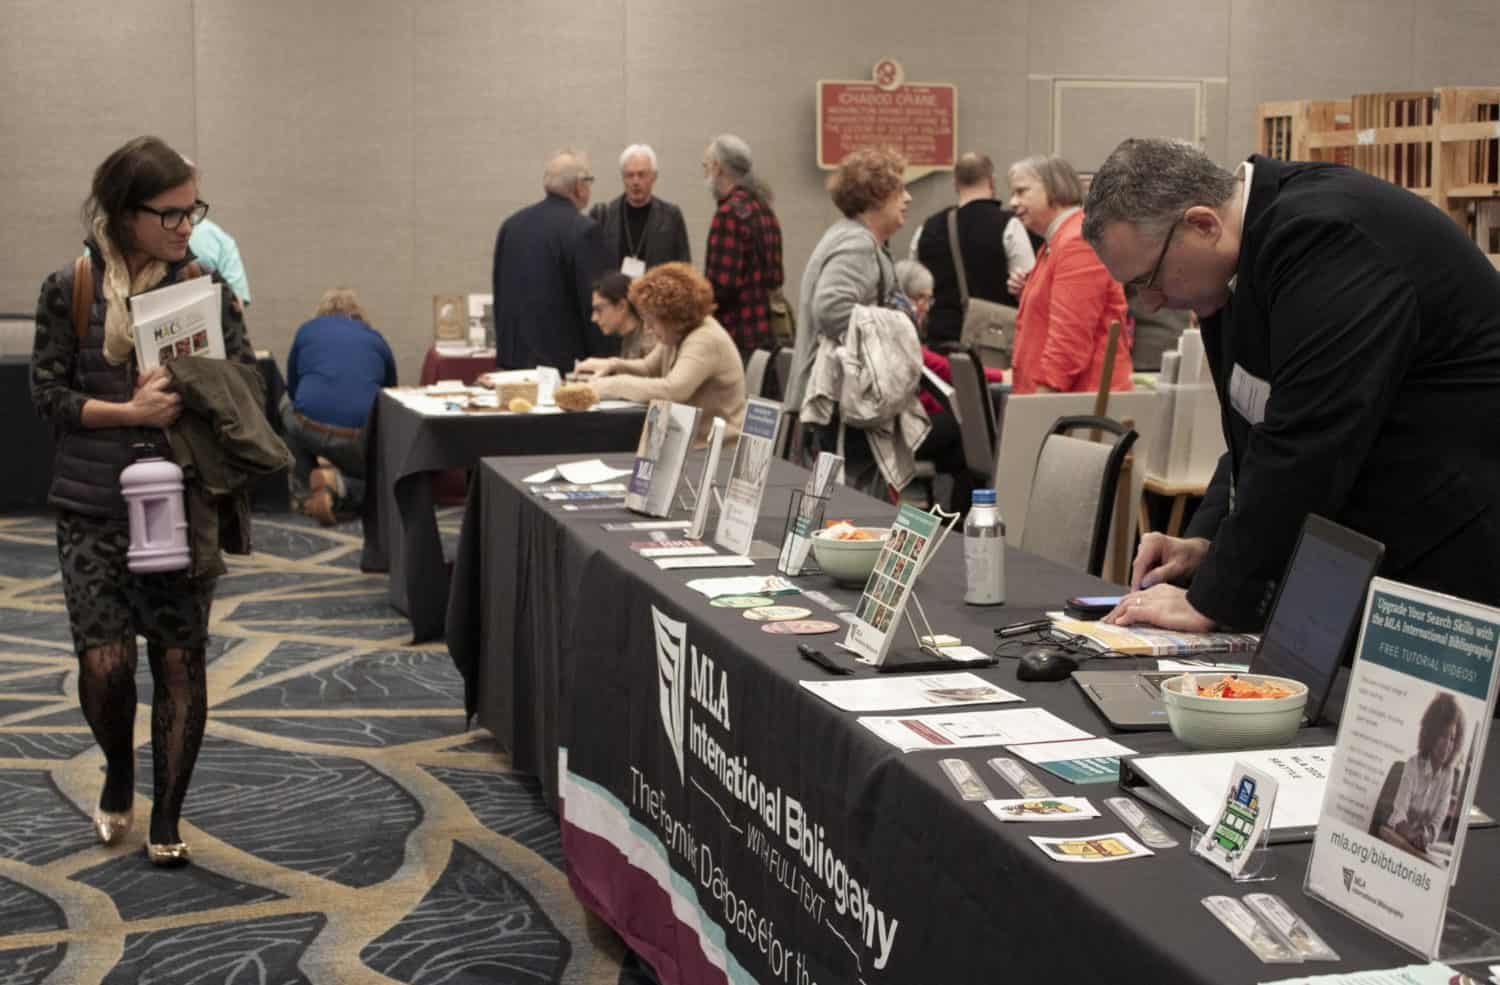 People browse and chat in groups around display tables in a conference exhibit room.